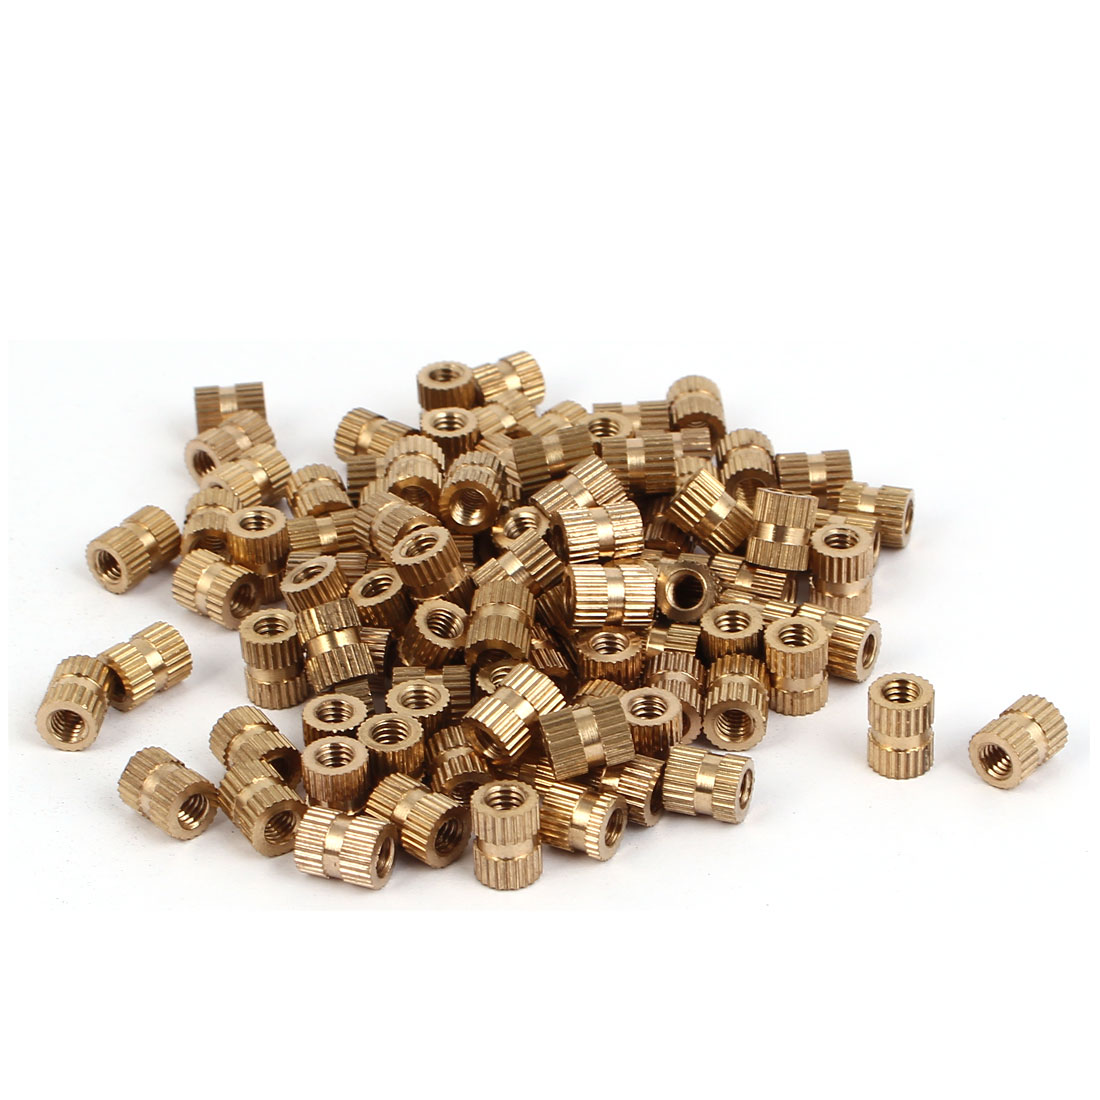 M4 x 8mm 0.7mm Pitch Brass Cylindrical Knurled Threaded Insert Nuts 100PCS